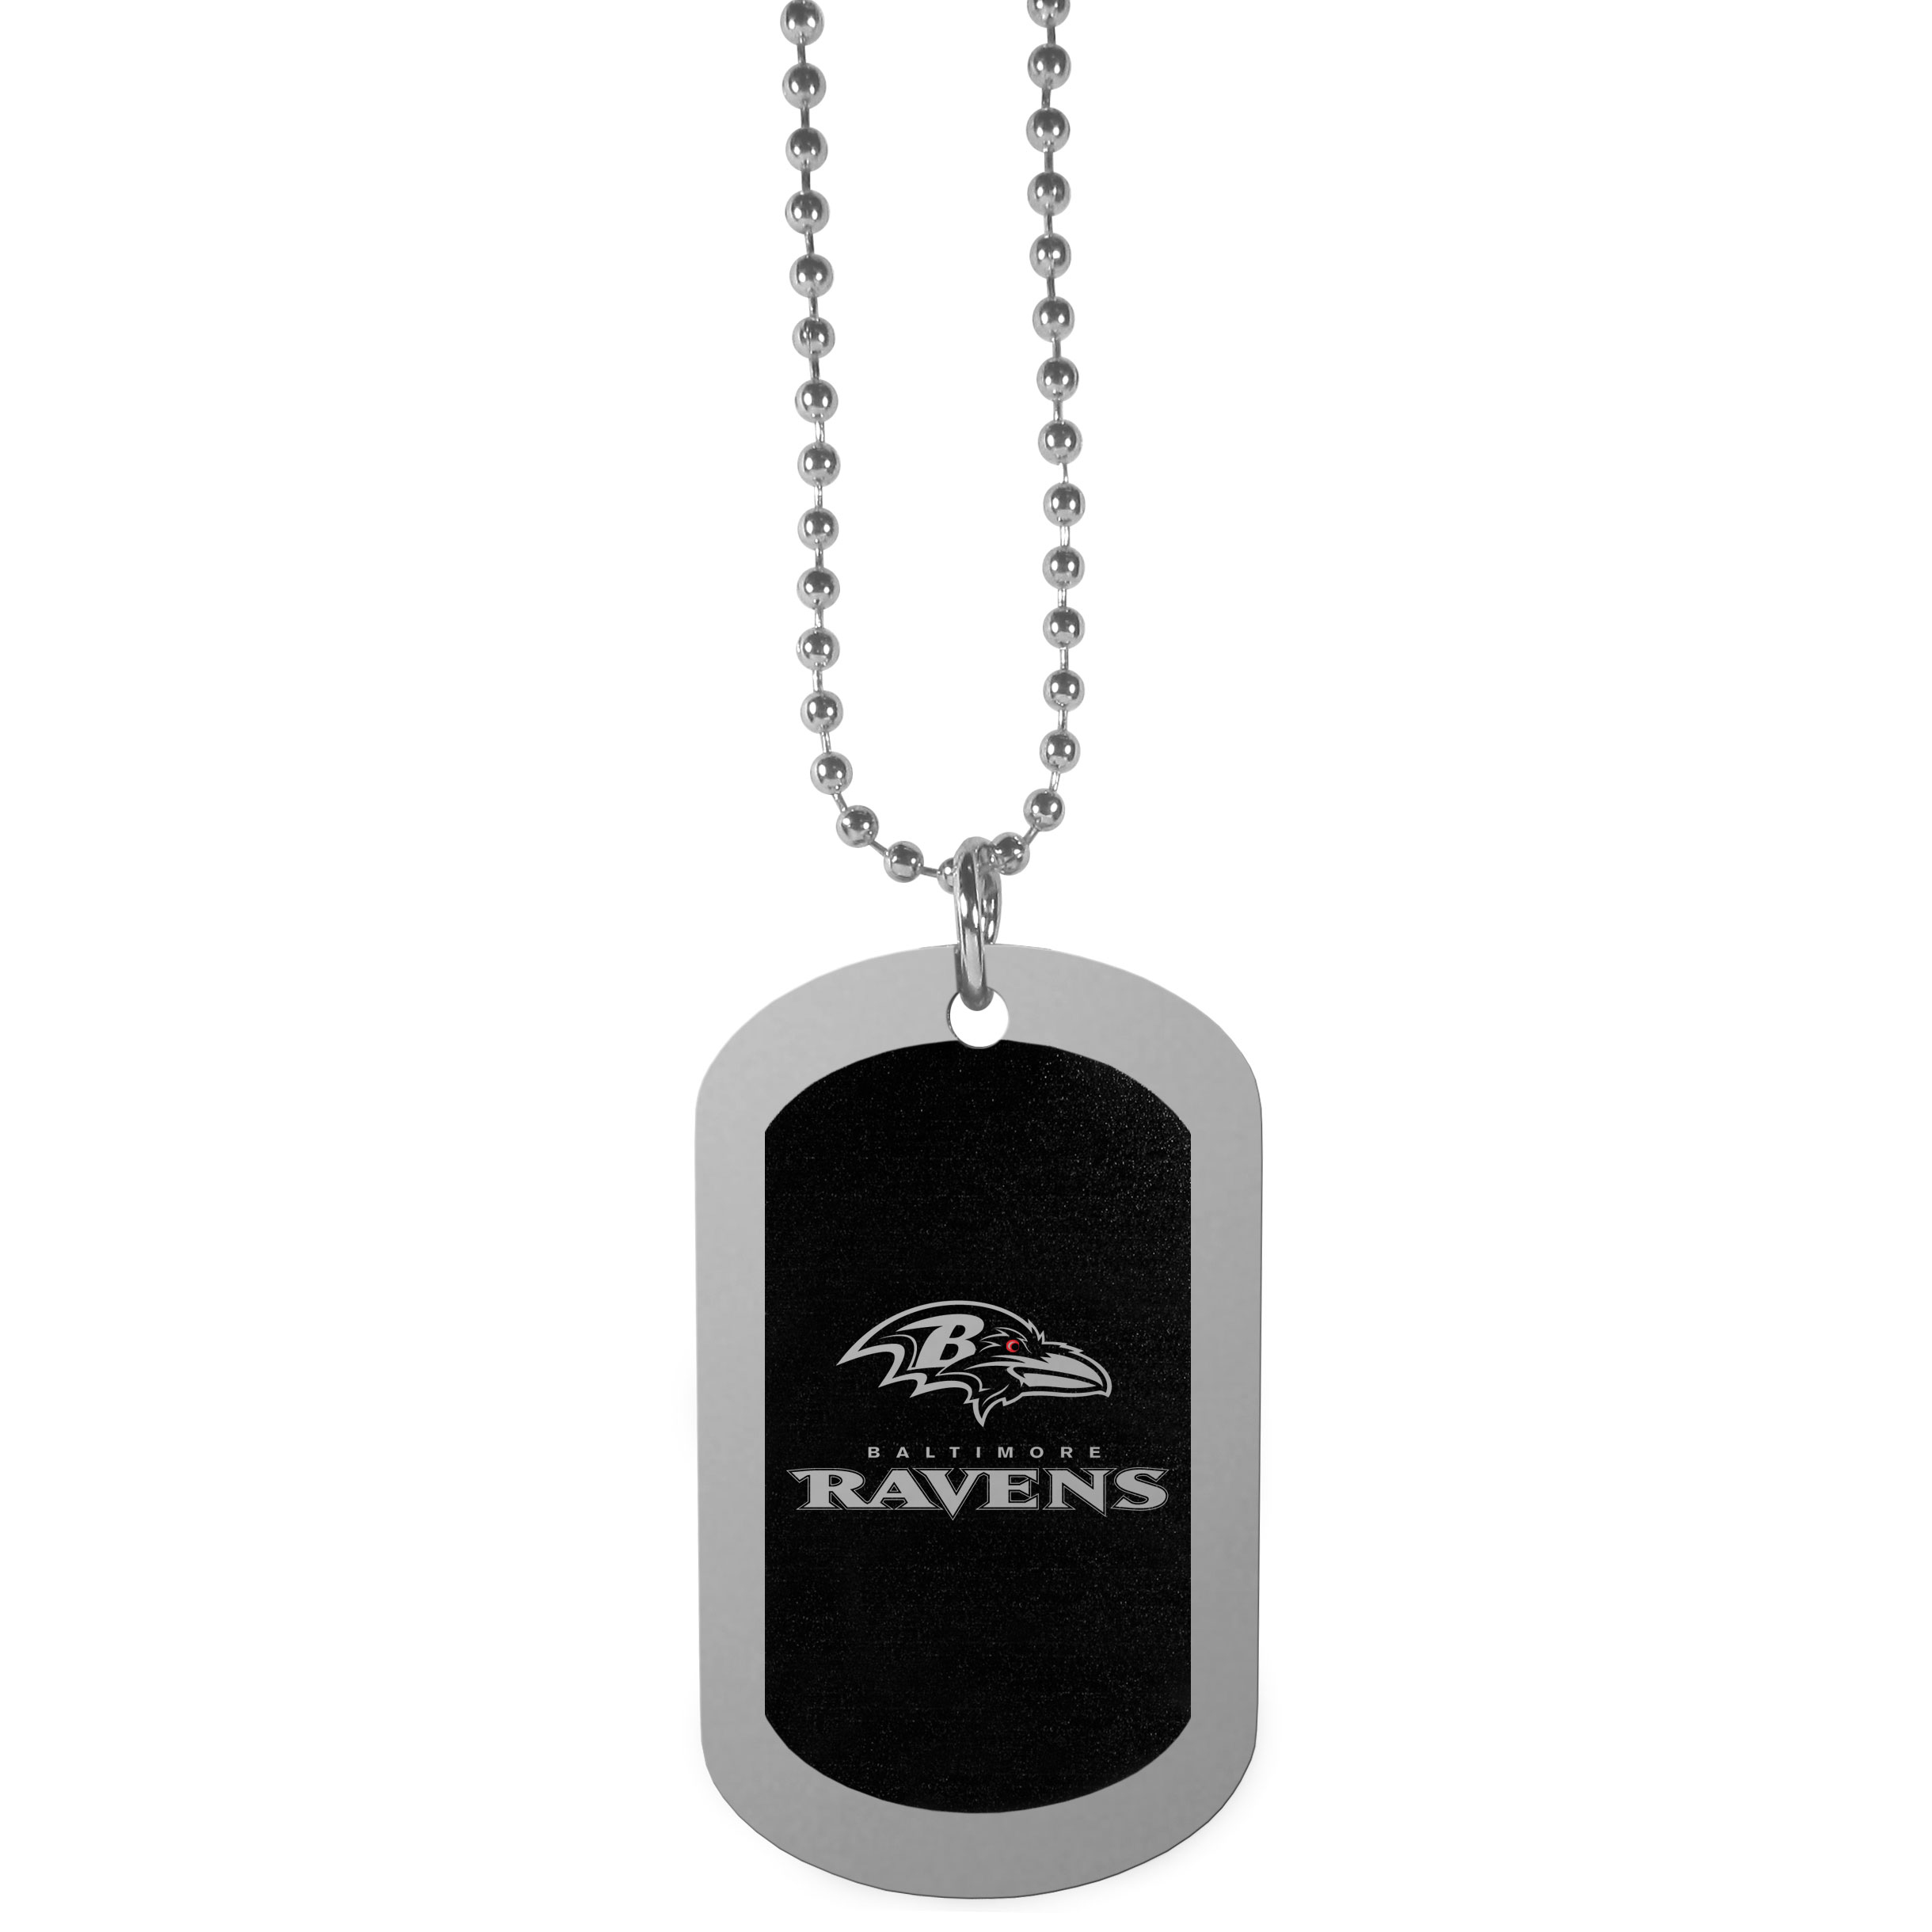 Baltimore Ravens Chrome Tag Necklace - Dog tag necklaces are a fashion statement that is here to stay. The sporty version of the classic tag features a black printed over a high polish tag to create a bold and sporty look. The tag comes on a 26 inch ball chain with a ball and joint clasp. Any Baltimore Ravens would be proud to wear this attractive fashion accessory.